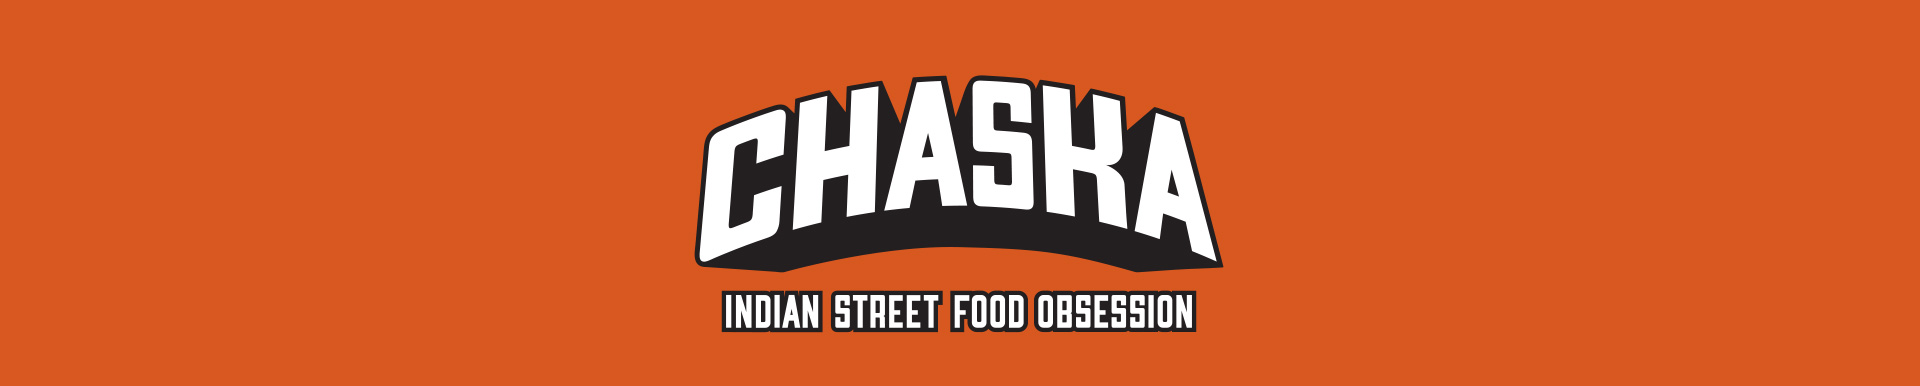 Chaska - Indian Food Obsession